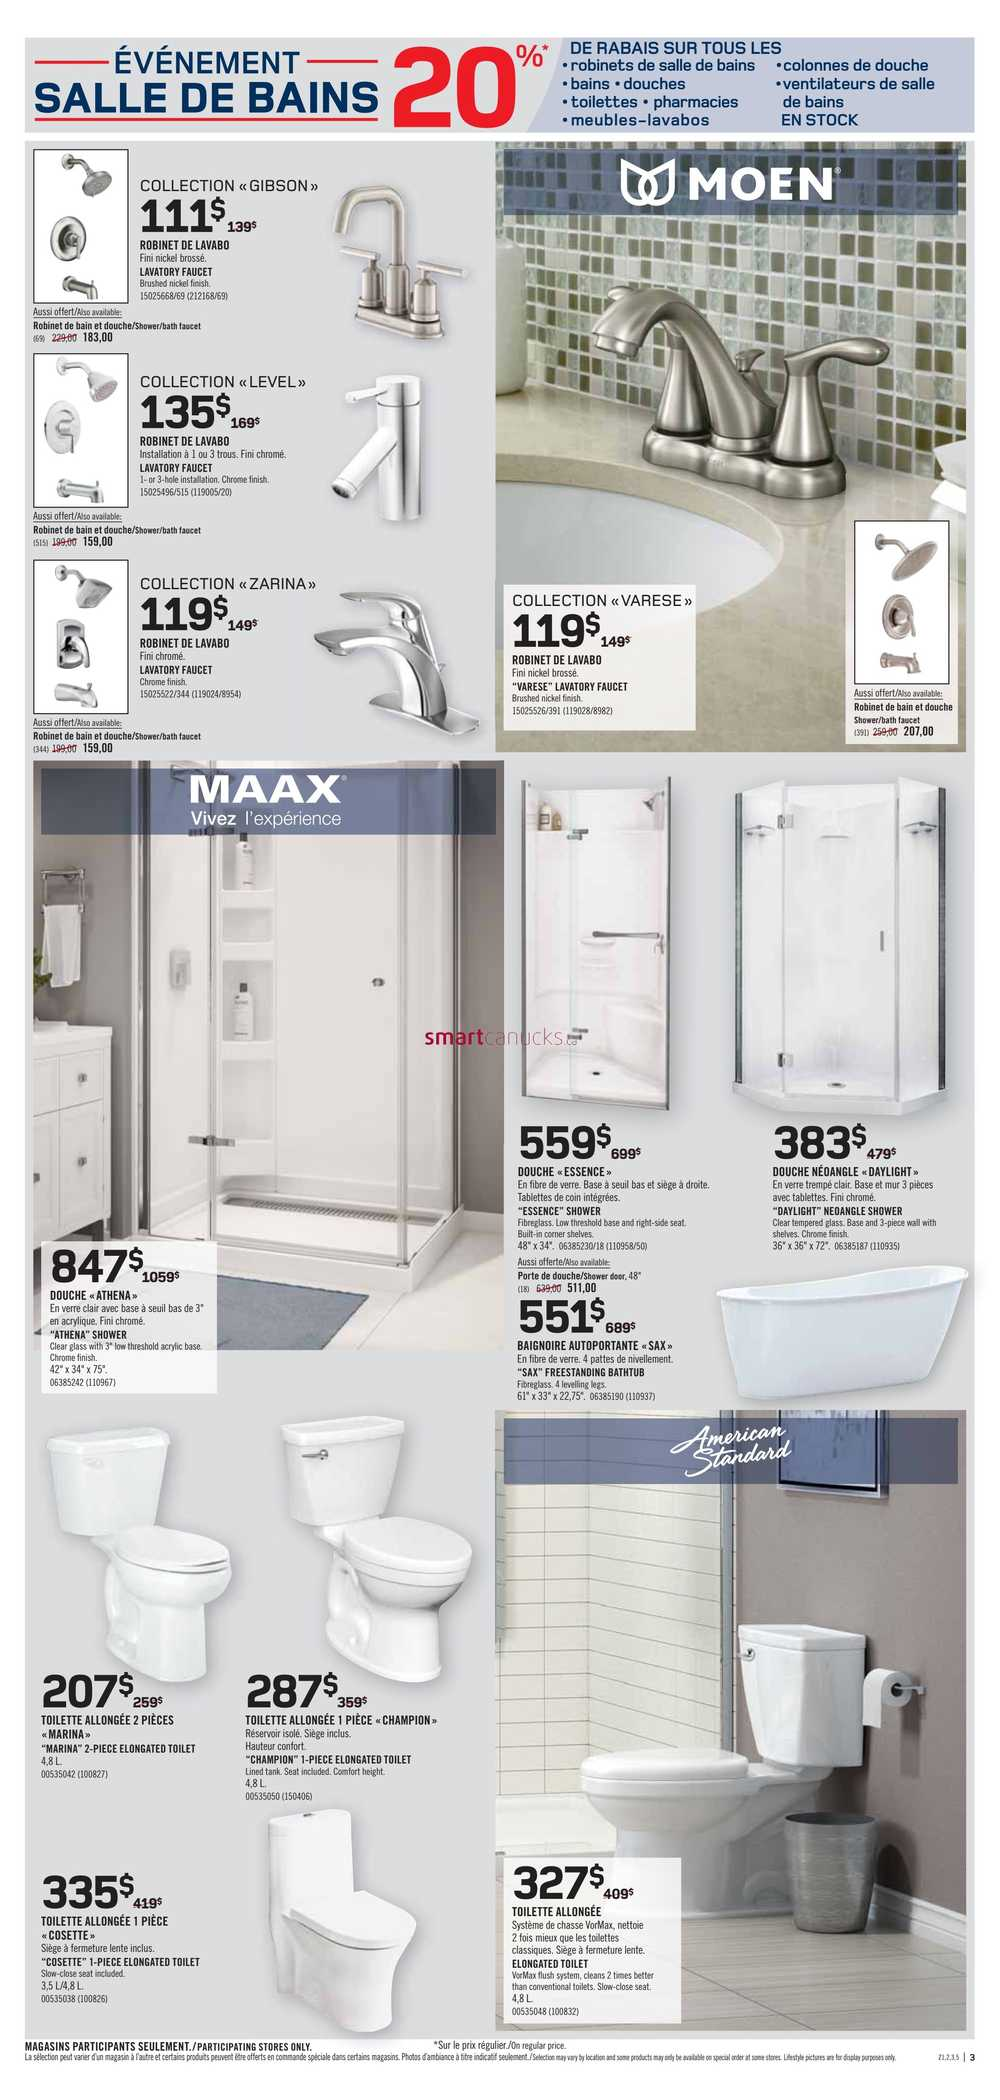 Lavabo Salle De Bain Rona Rona Qc Flyer March 1 To 7